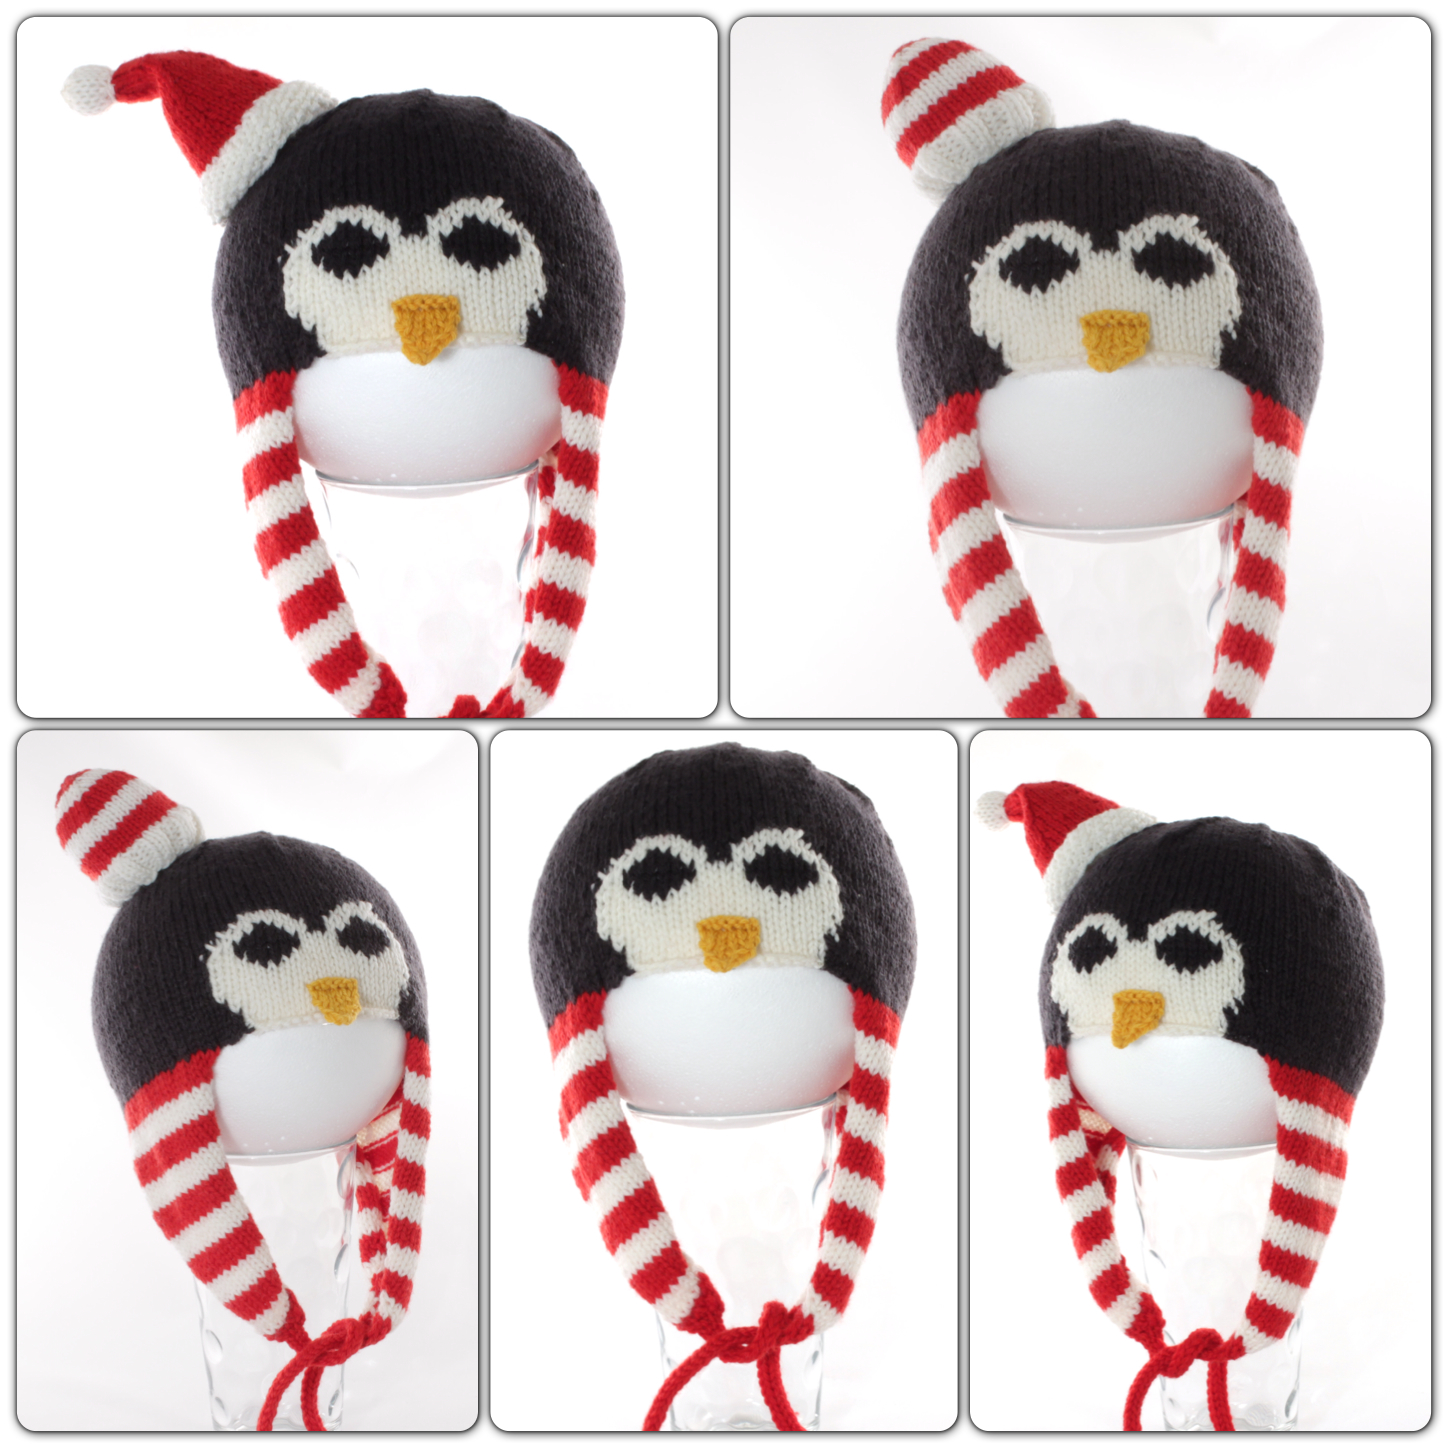 penguin hat montage